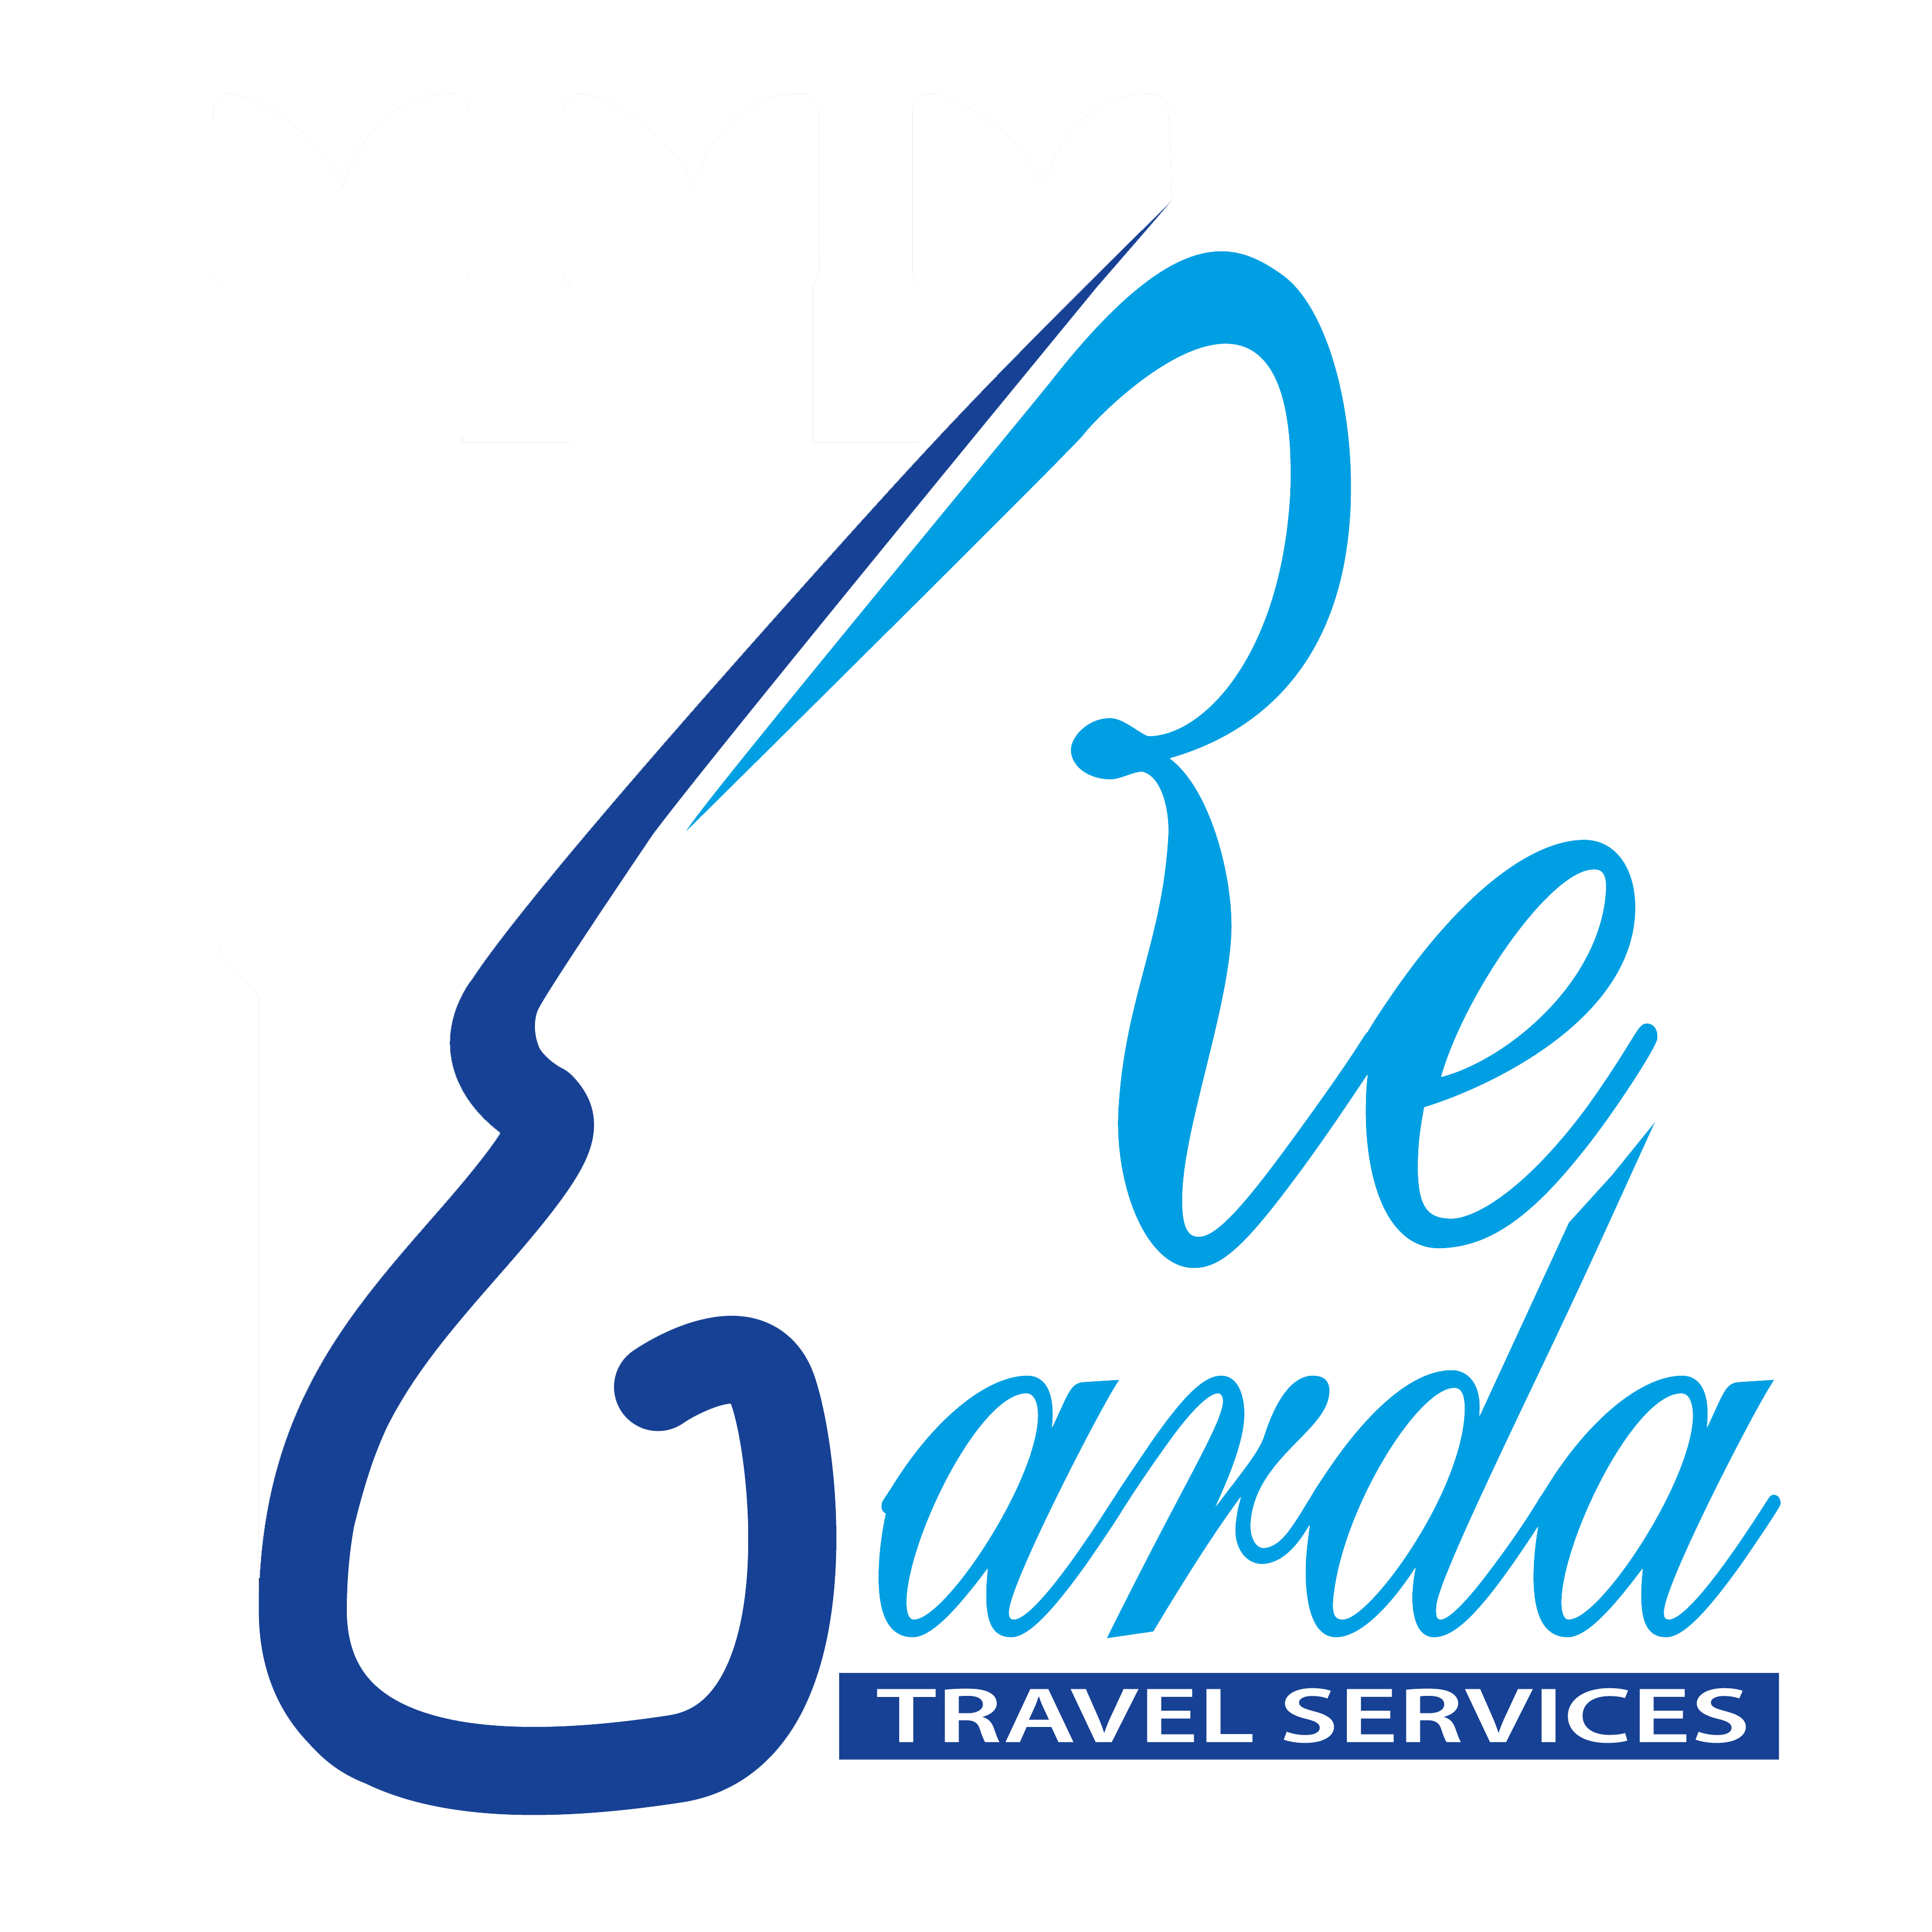 Regarda Travel